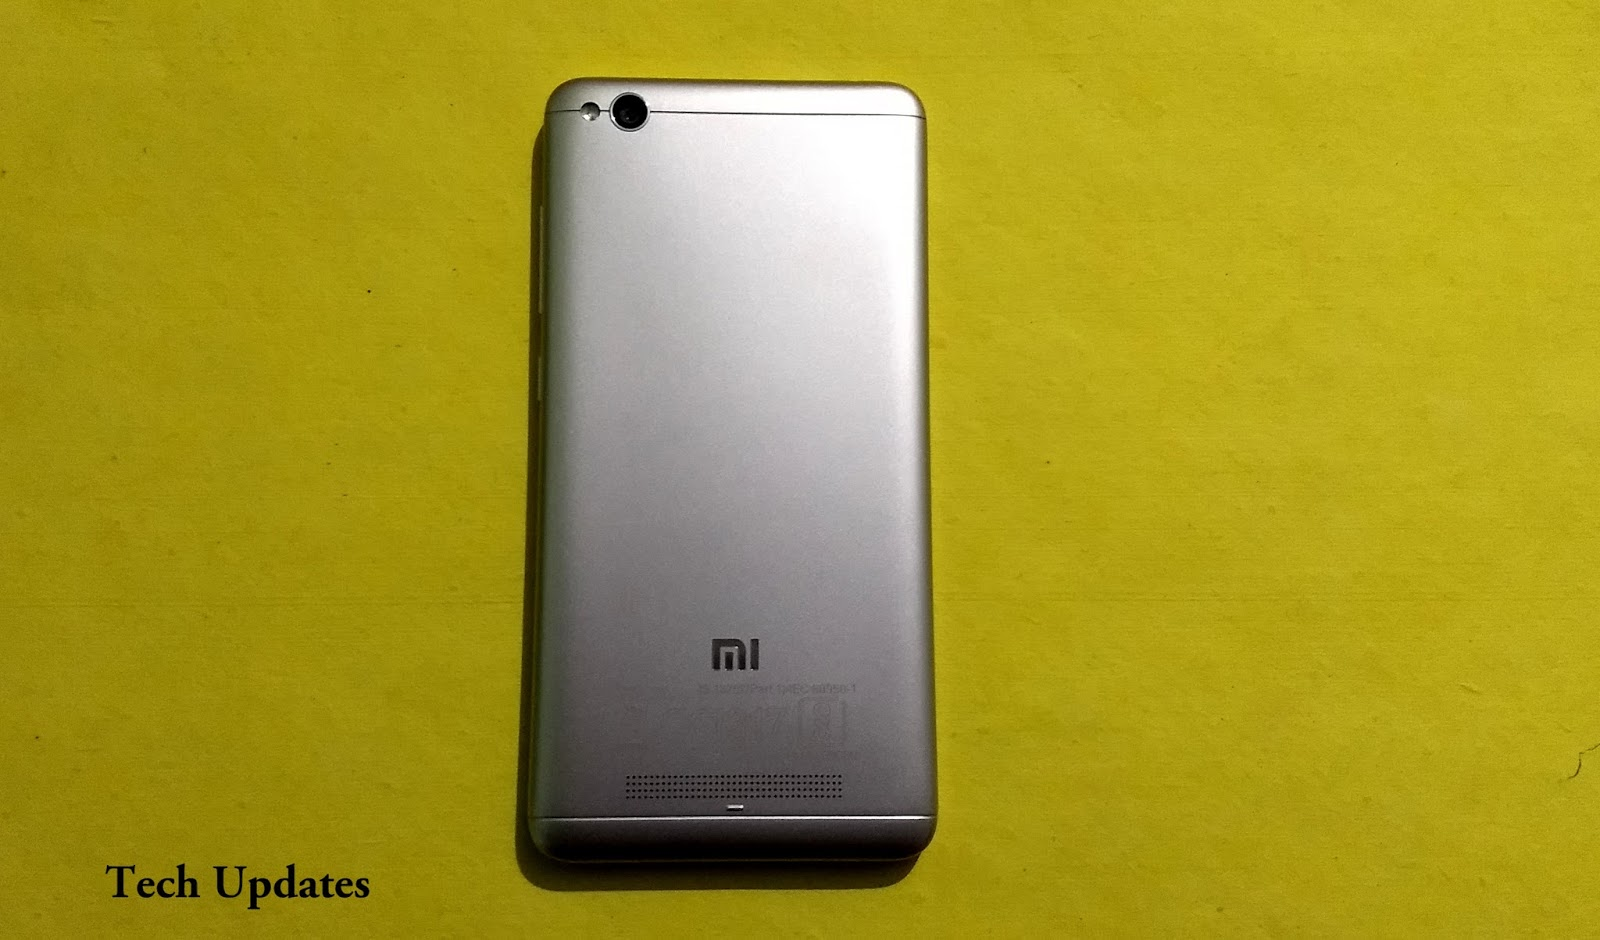 Xiaomi Redmi 4a Unboxing Photo Gallery Hands On Tech Updates 2 16gb Gold